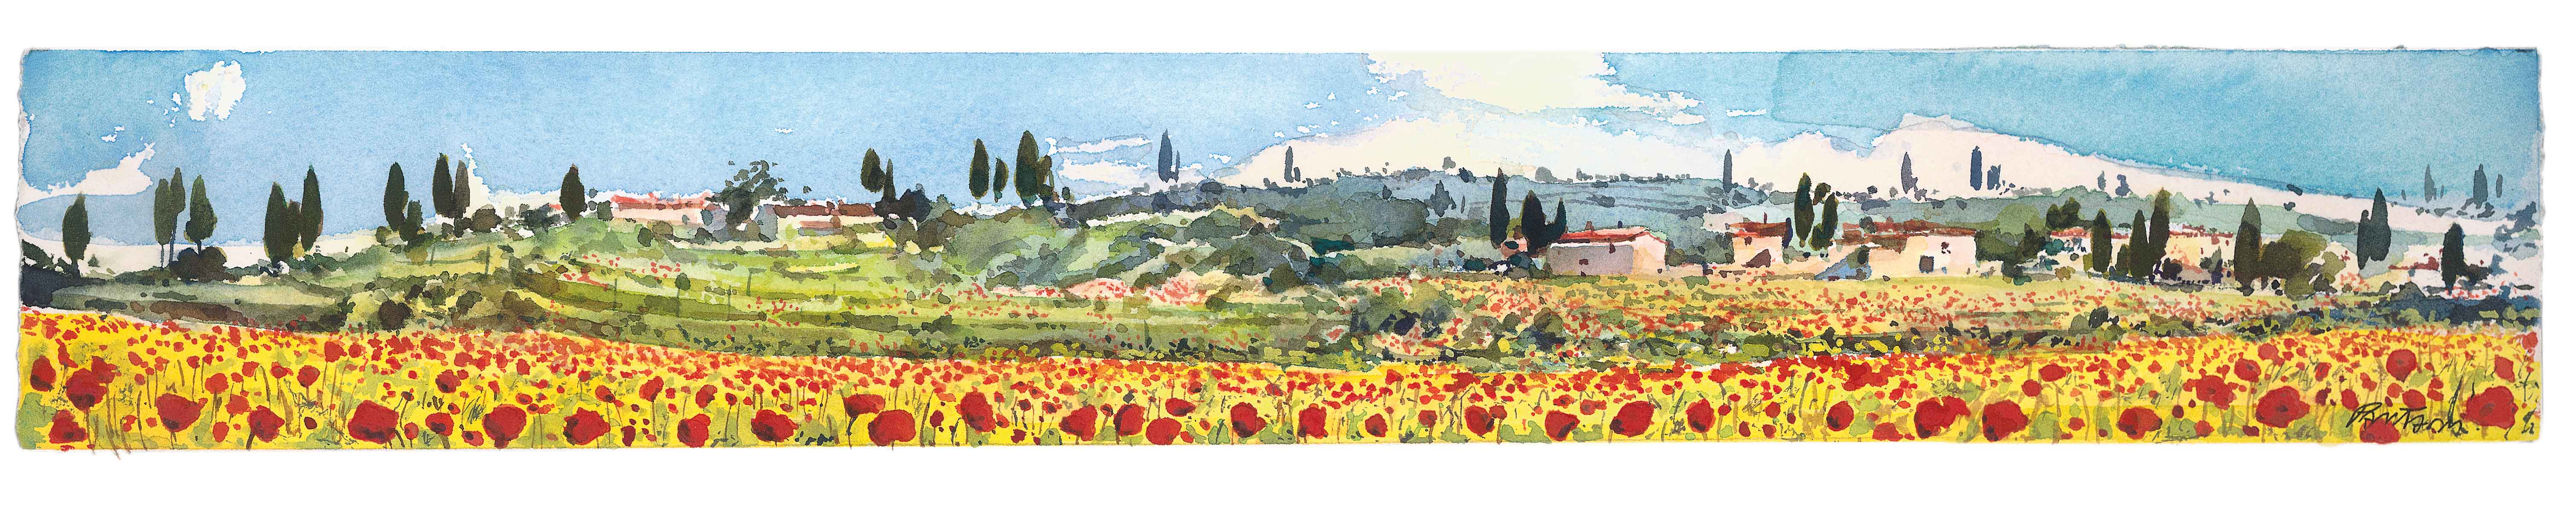 Papaveri in toscana, toscana poppies